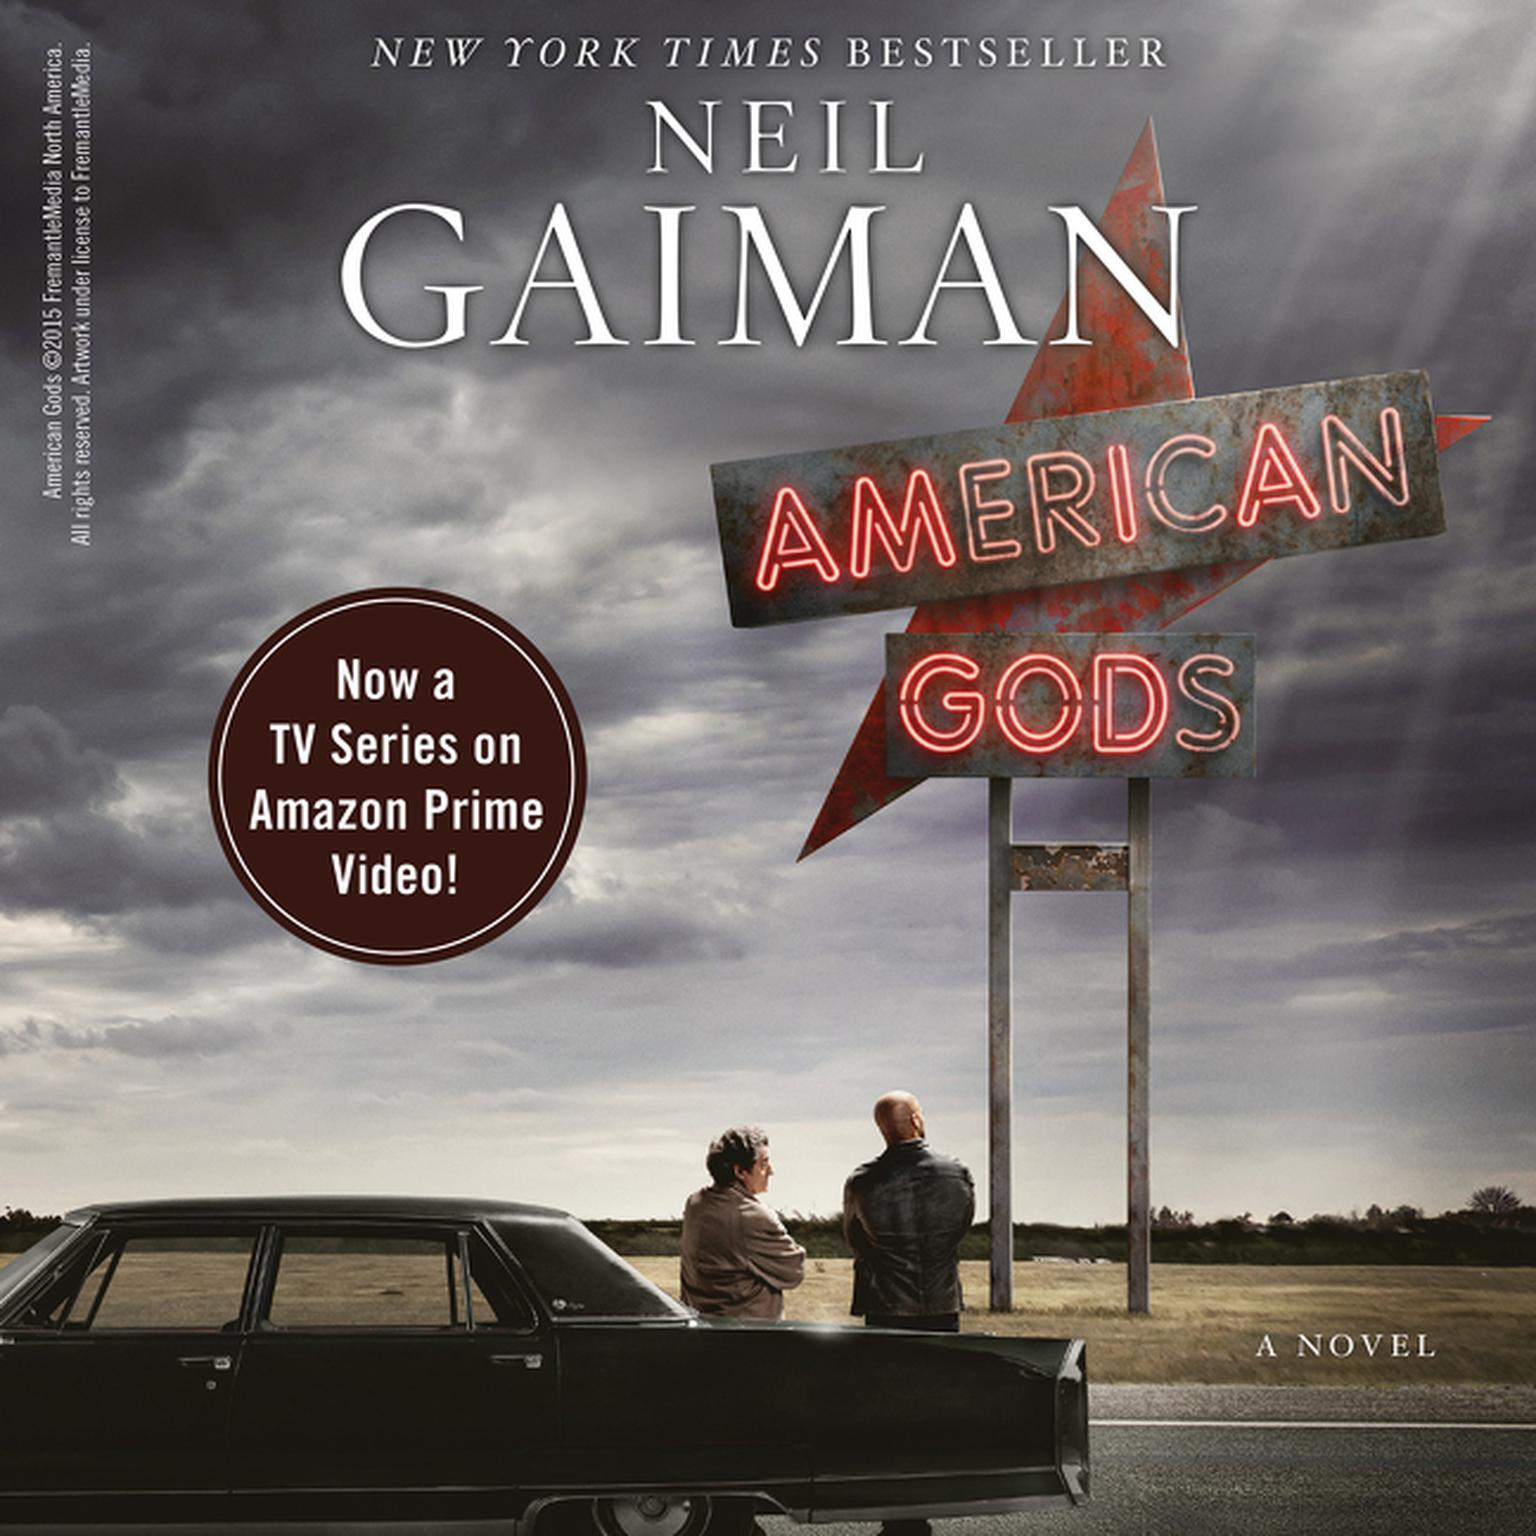 Printable American Gods [TV Tie-In]: A Novel Audiobook Cover Art